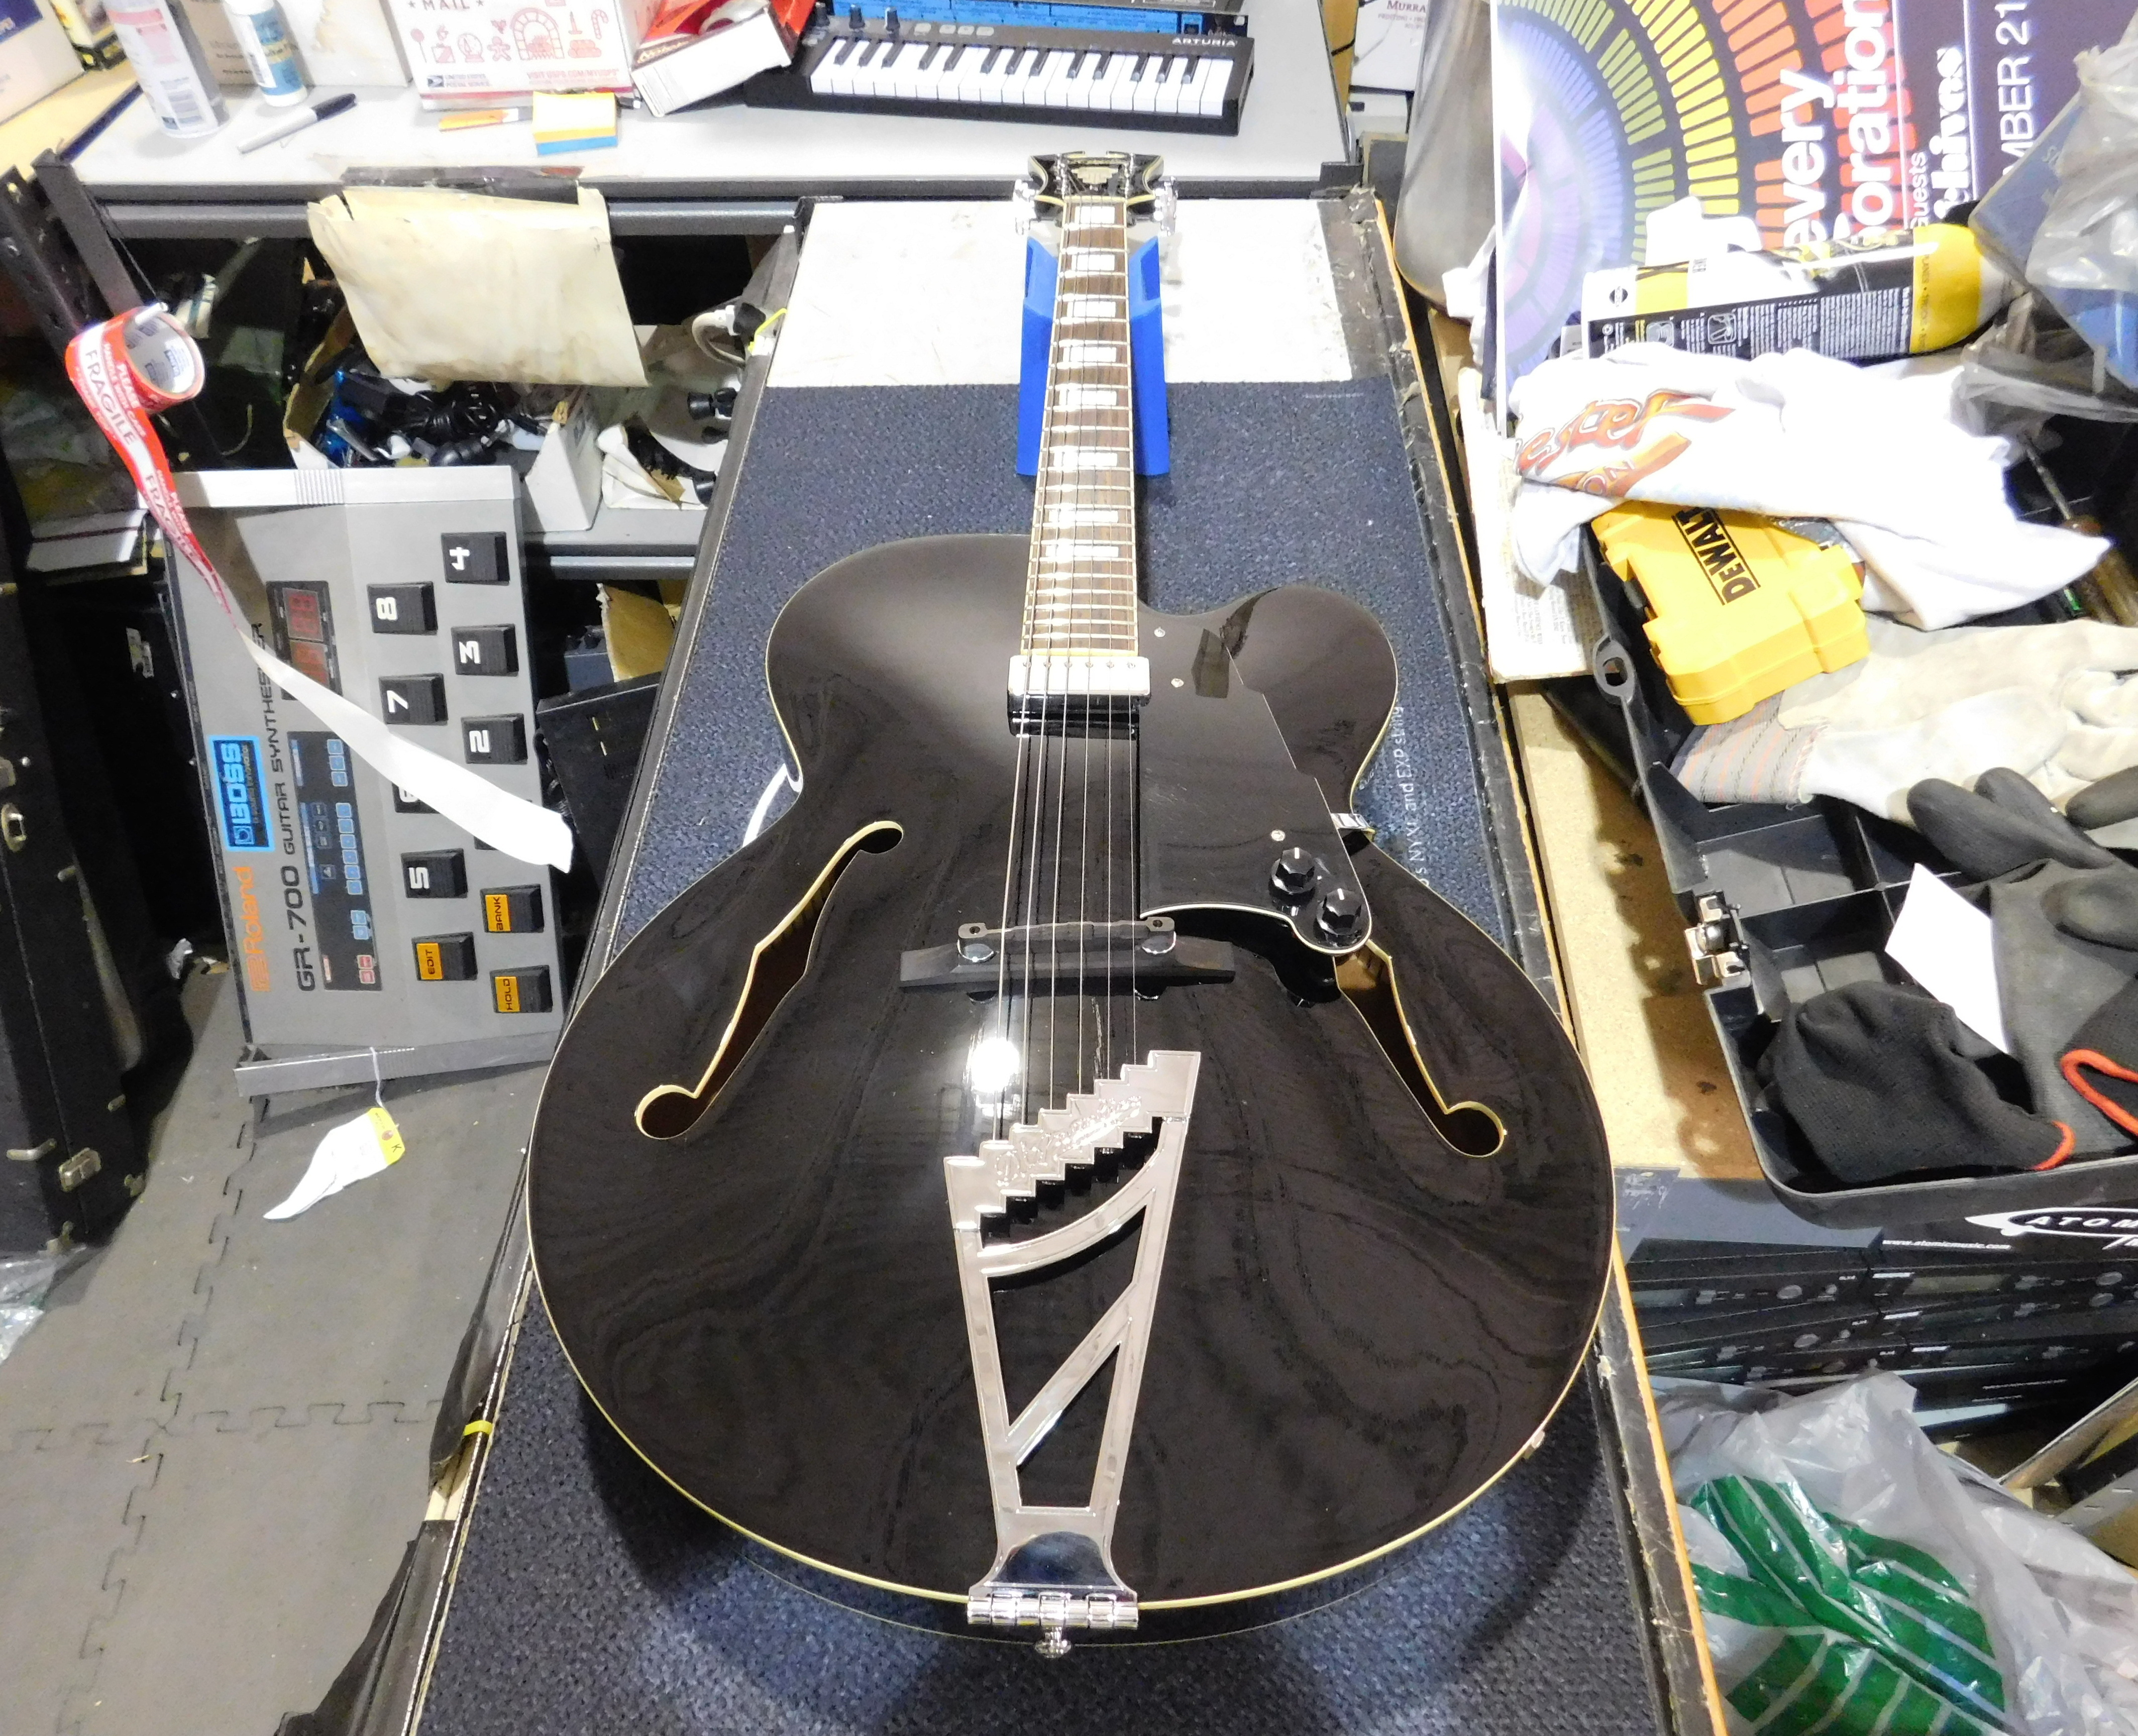 D'ANGELICO Premier EXL-1 Hollowbody Electric Guitar w/ Stairstep Tailpiece HSC